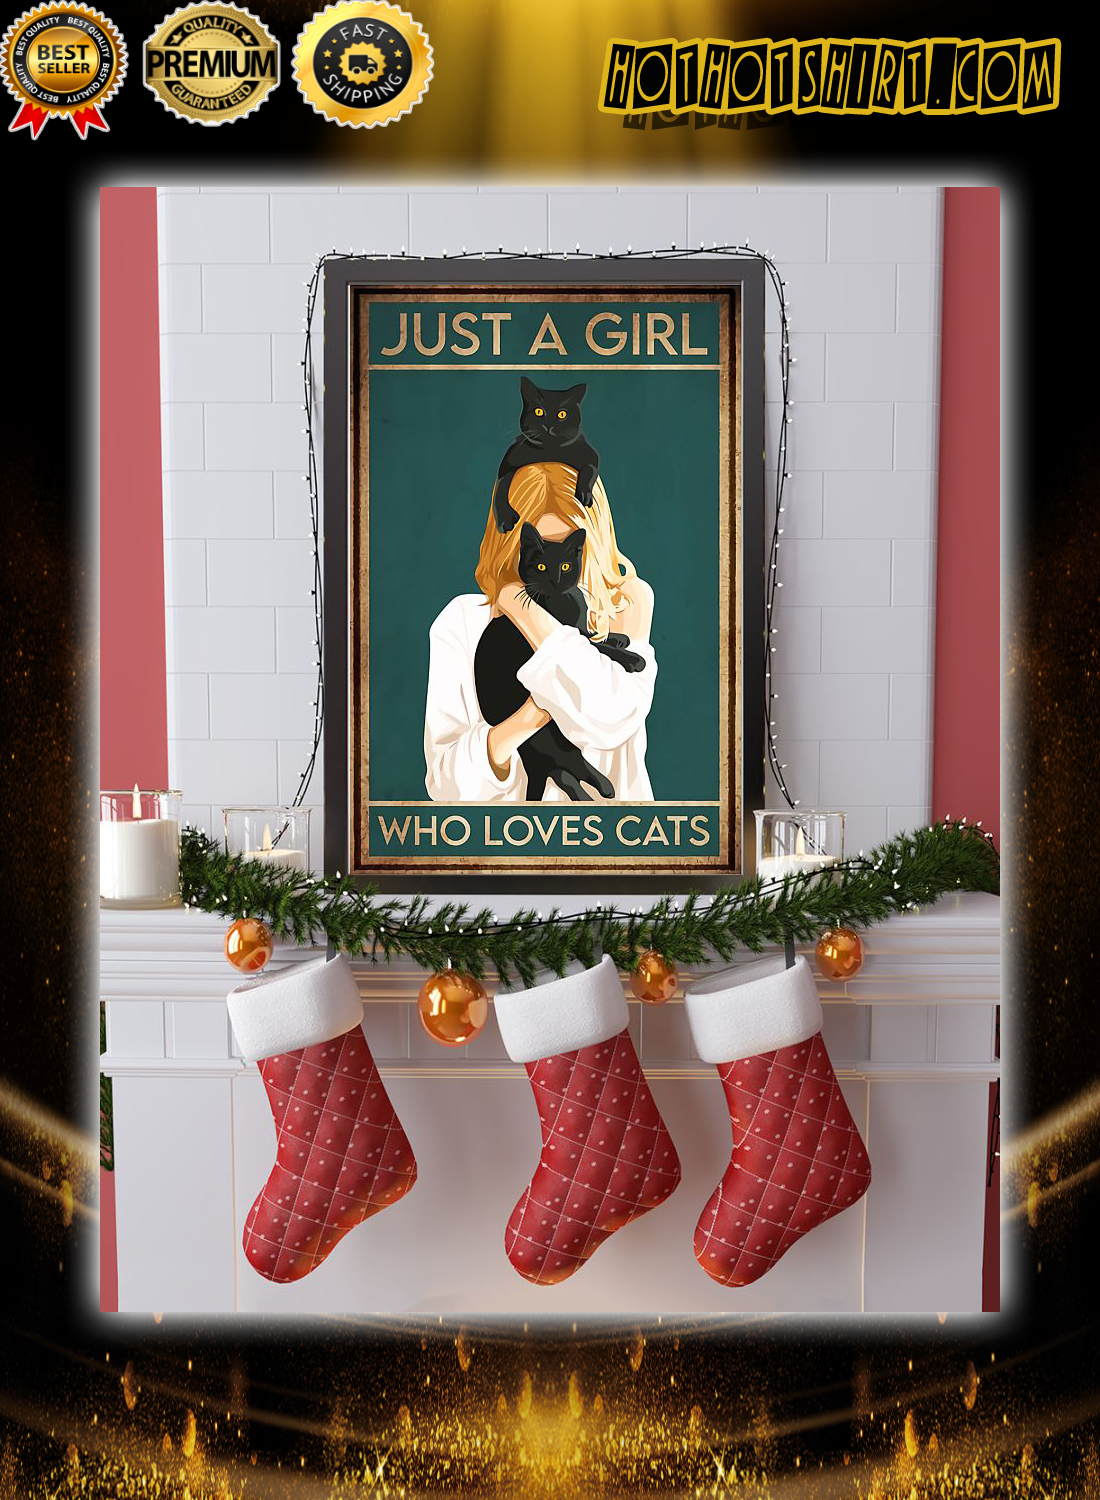 Just a girl who loves cats poster